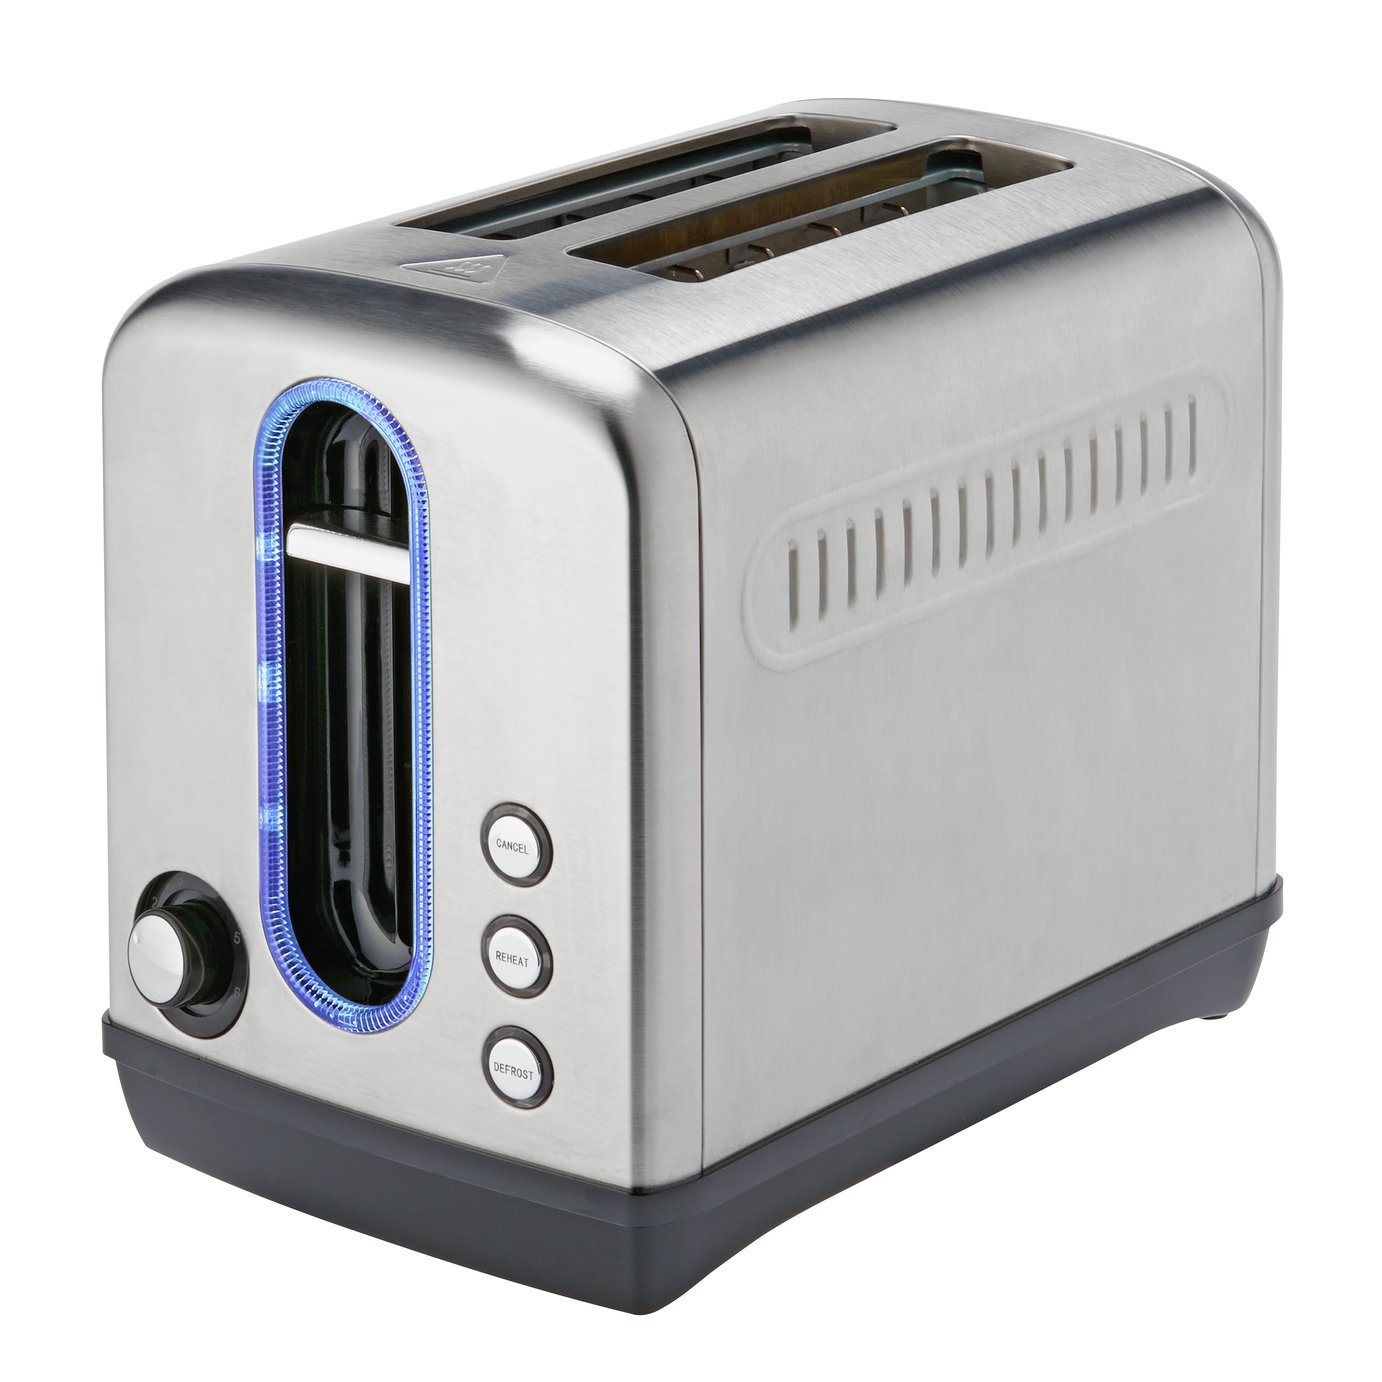 Cookworks Illuminated 2 Slice Toaster - Brushed S/Steel